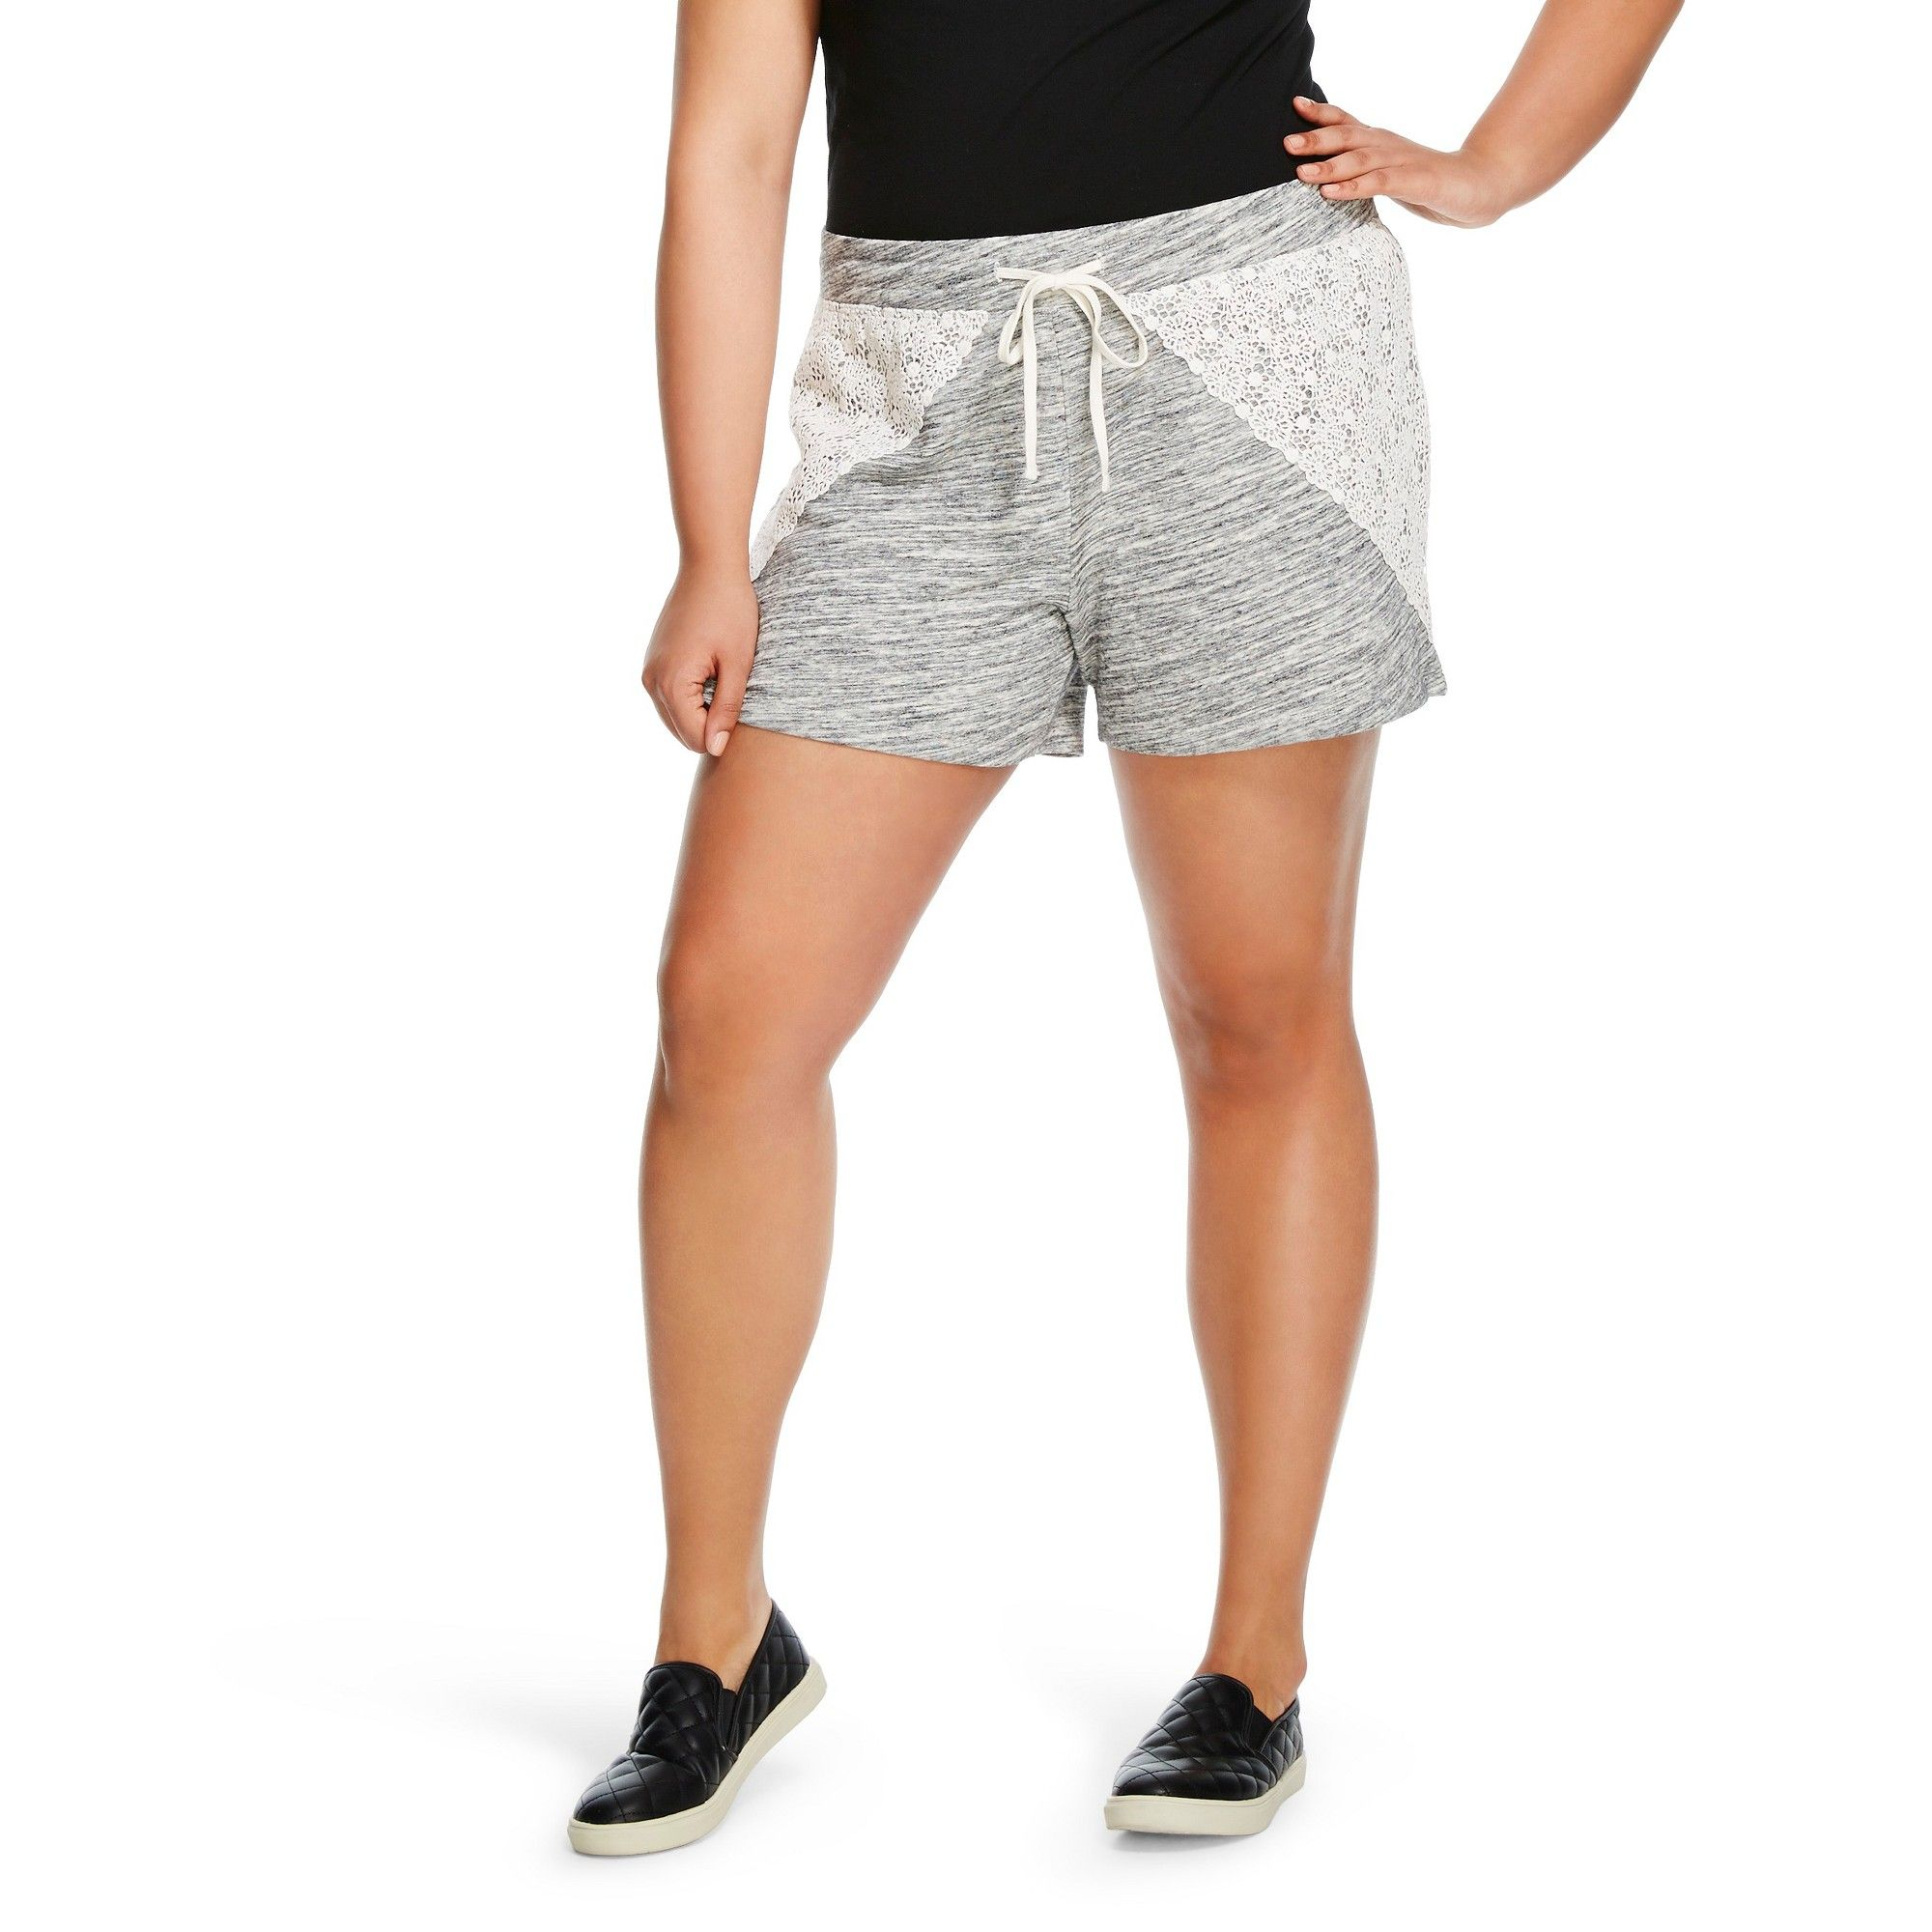 cc75fff47d3 Women s Plus Size Soft Shorts Space Gray 4X - Mossimo Supply Co ...